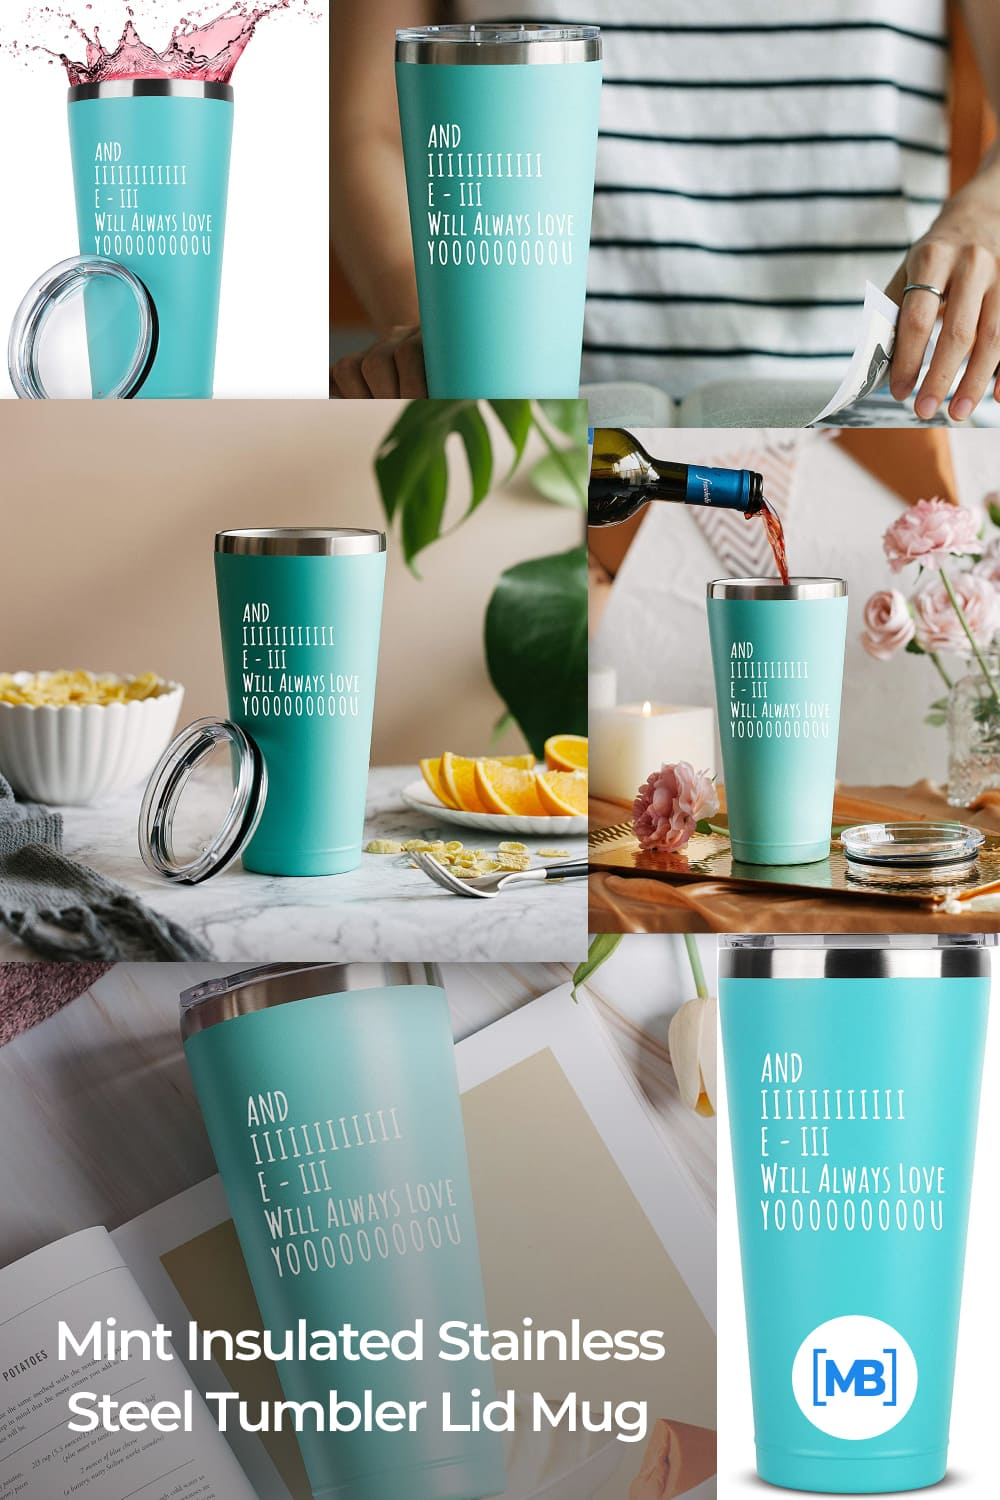 Mint insulated stainless steel tumbler w/lid mug.